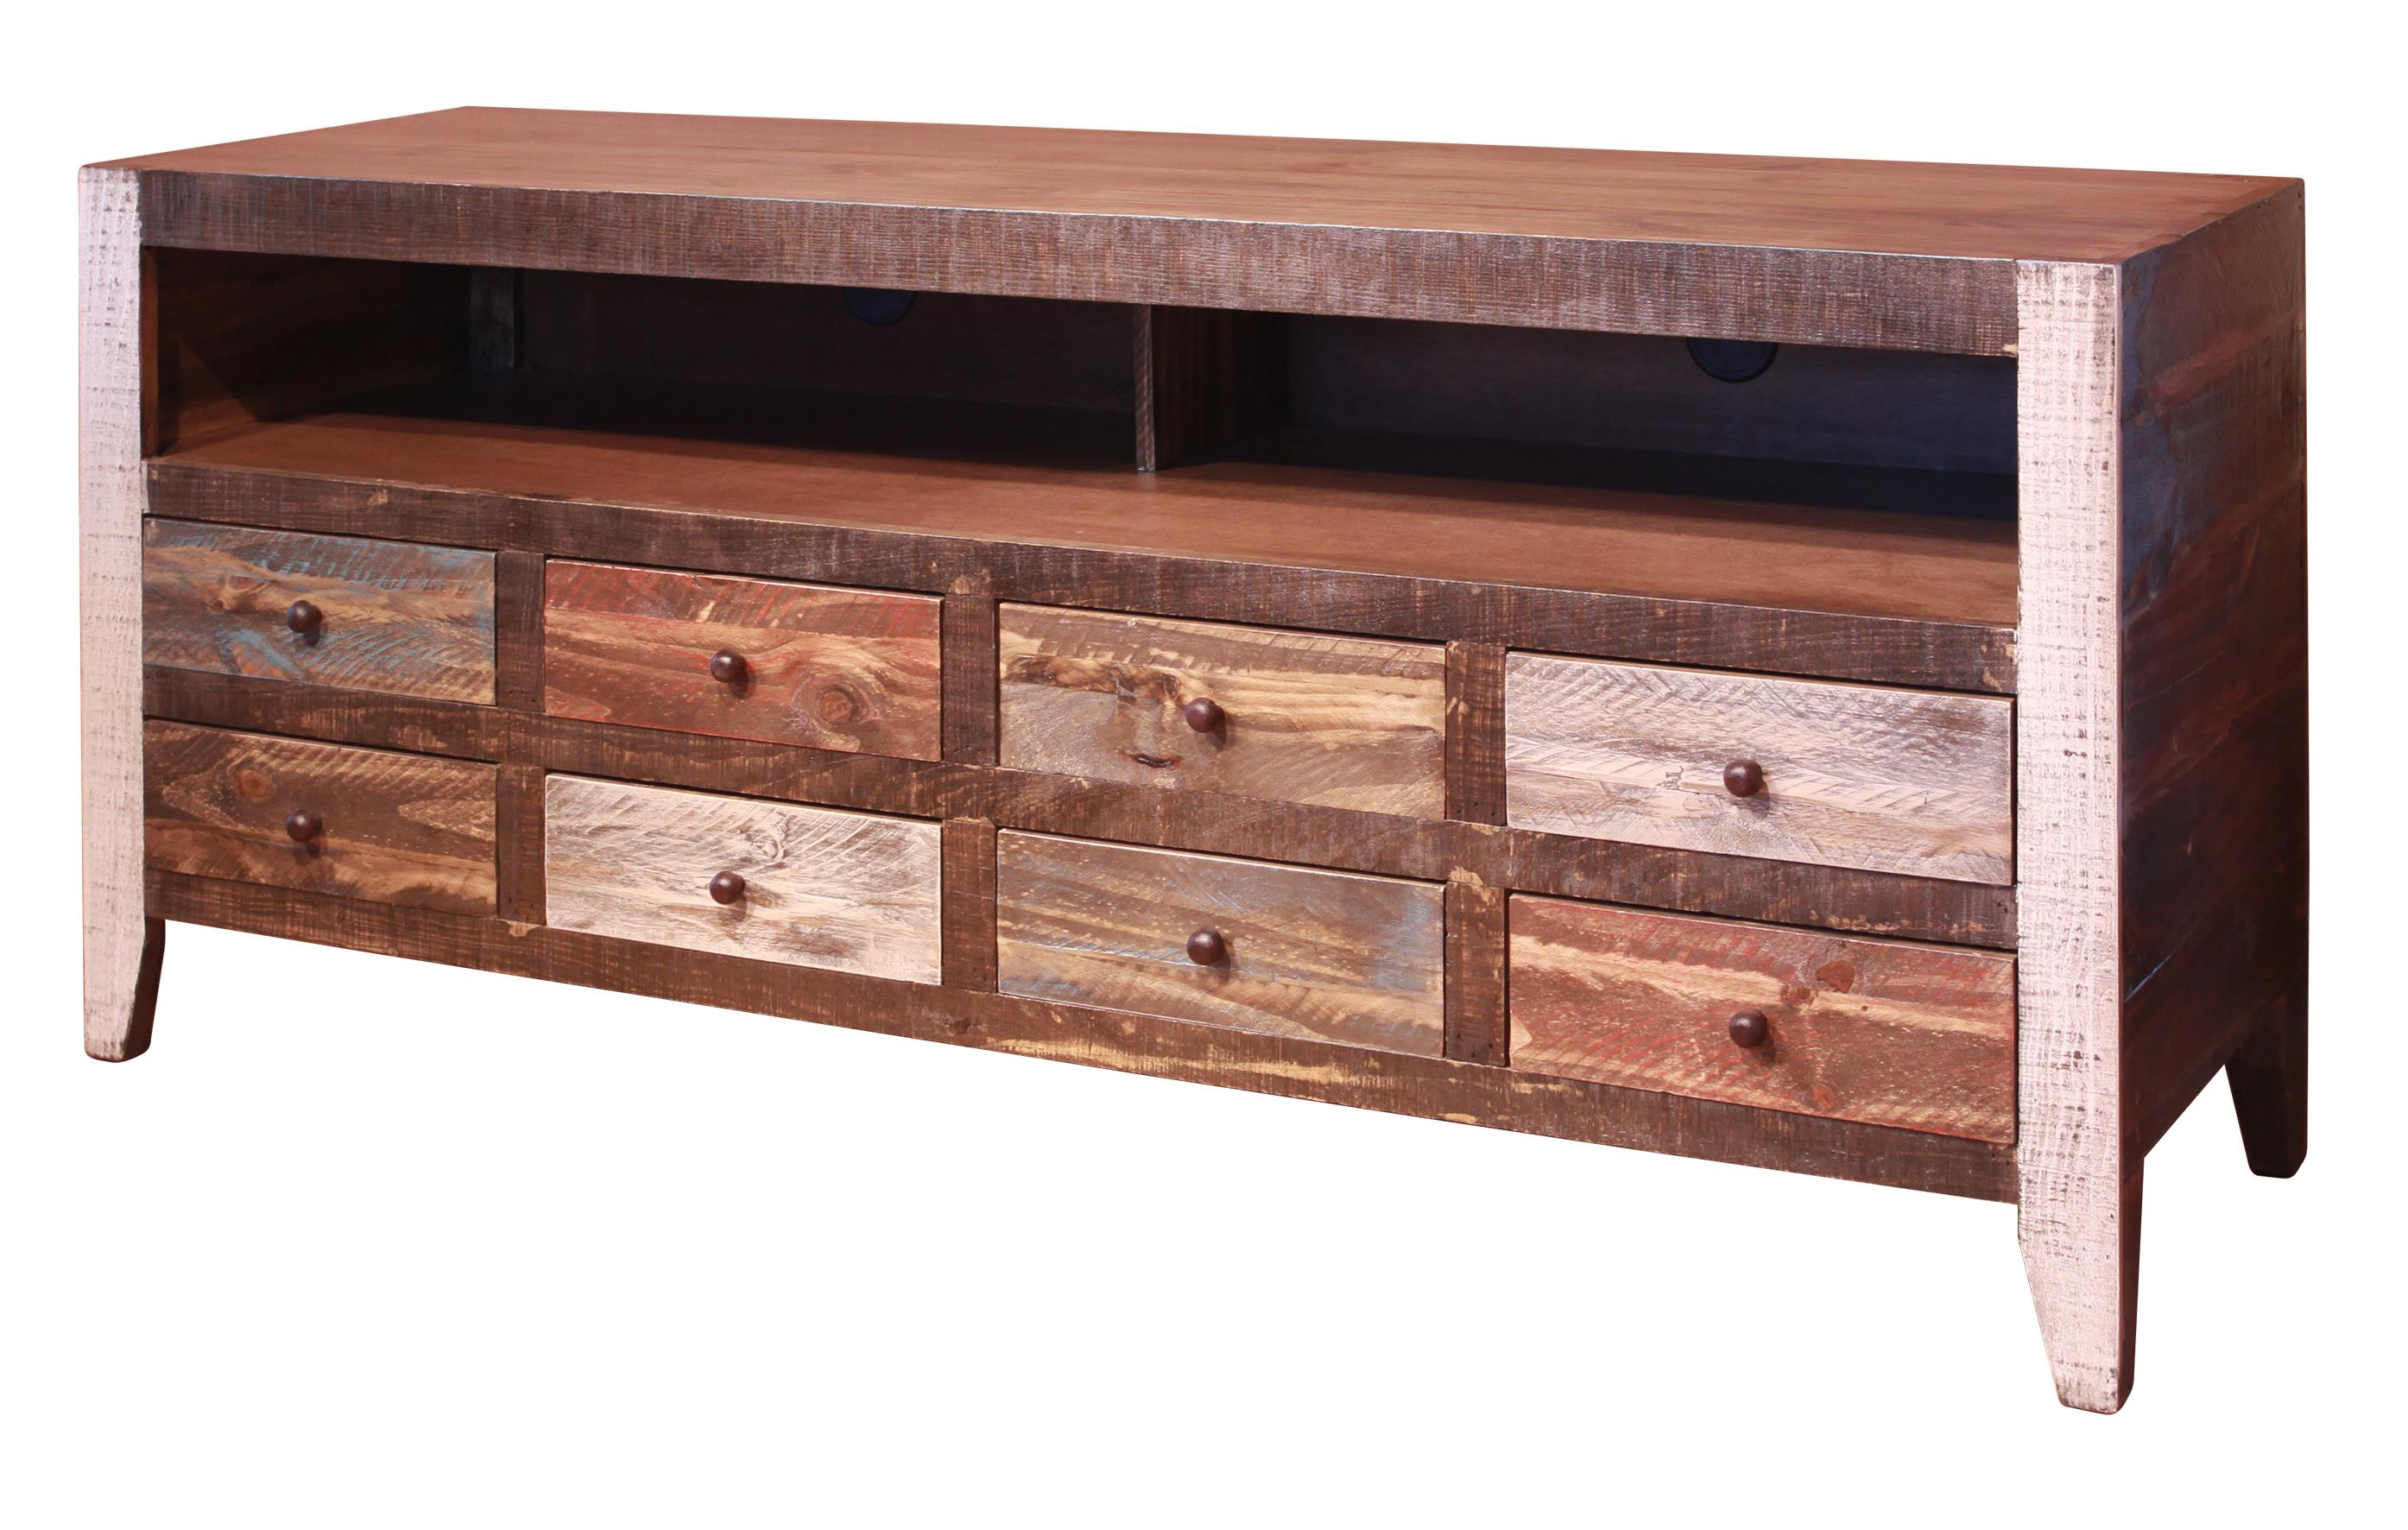 900 Antique 8 Drawer TV Stand by International Furniture Direct at Home Furnishings Direct